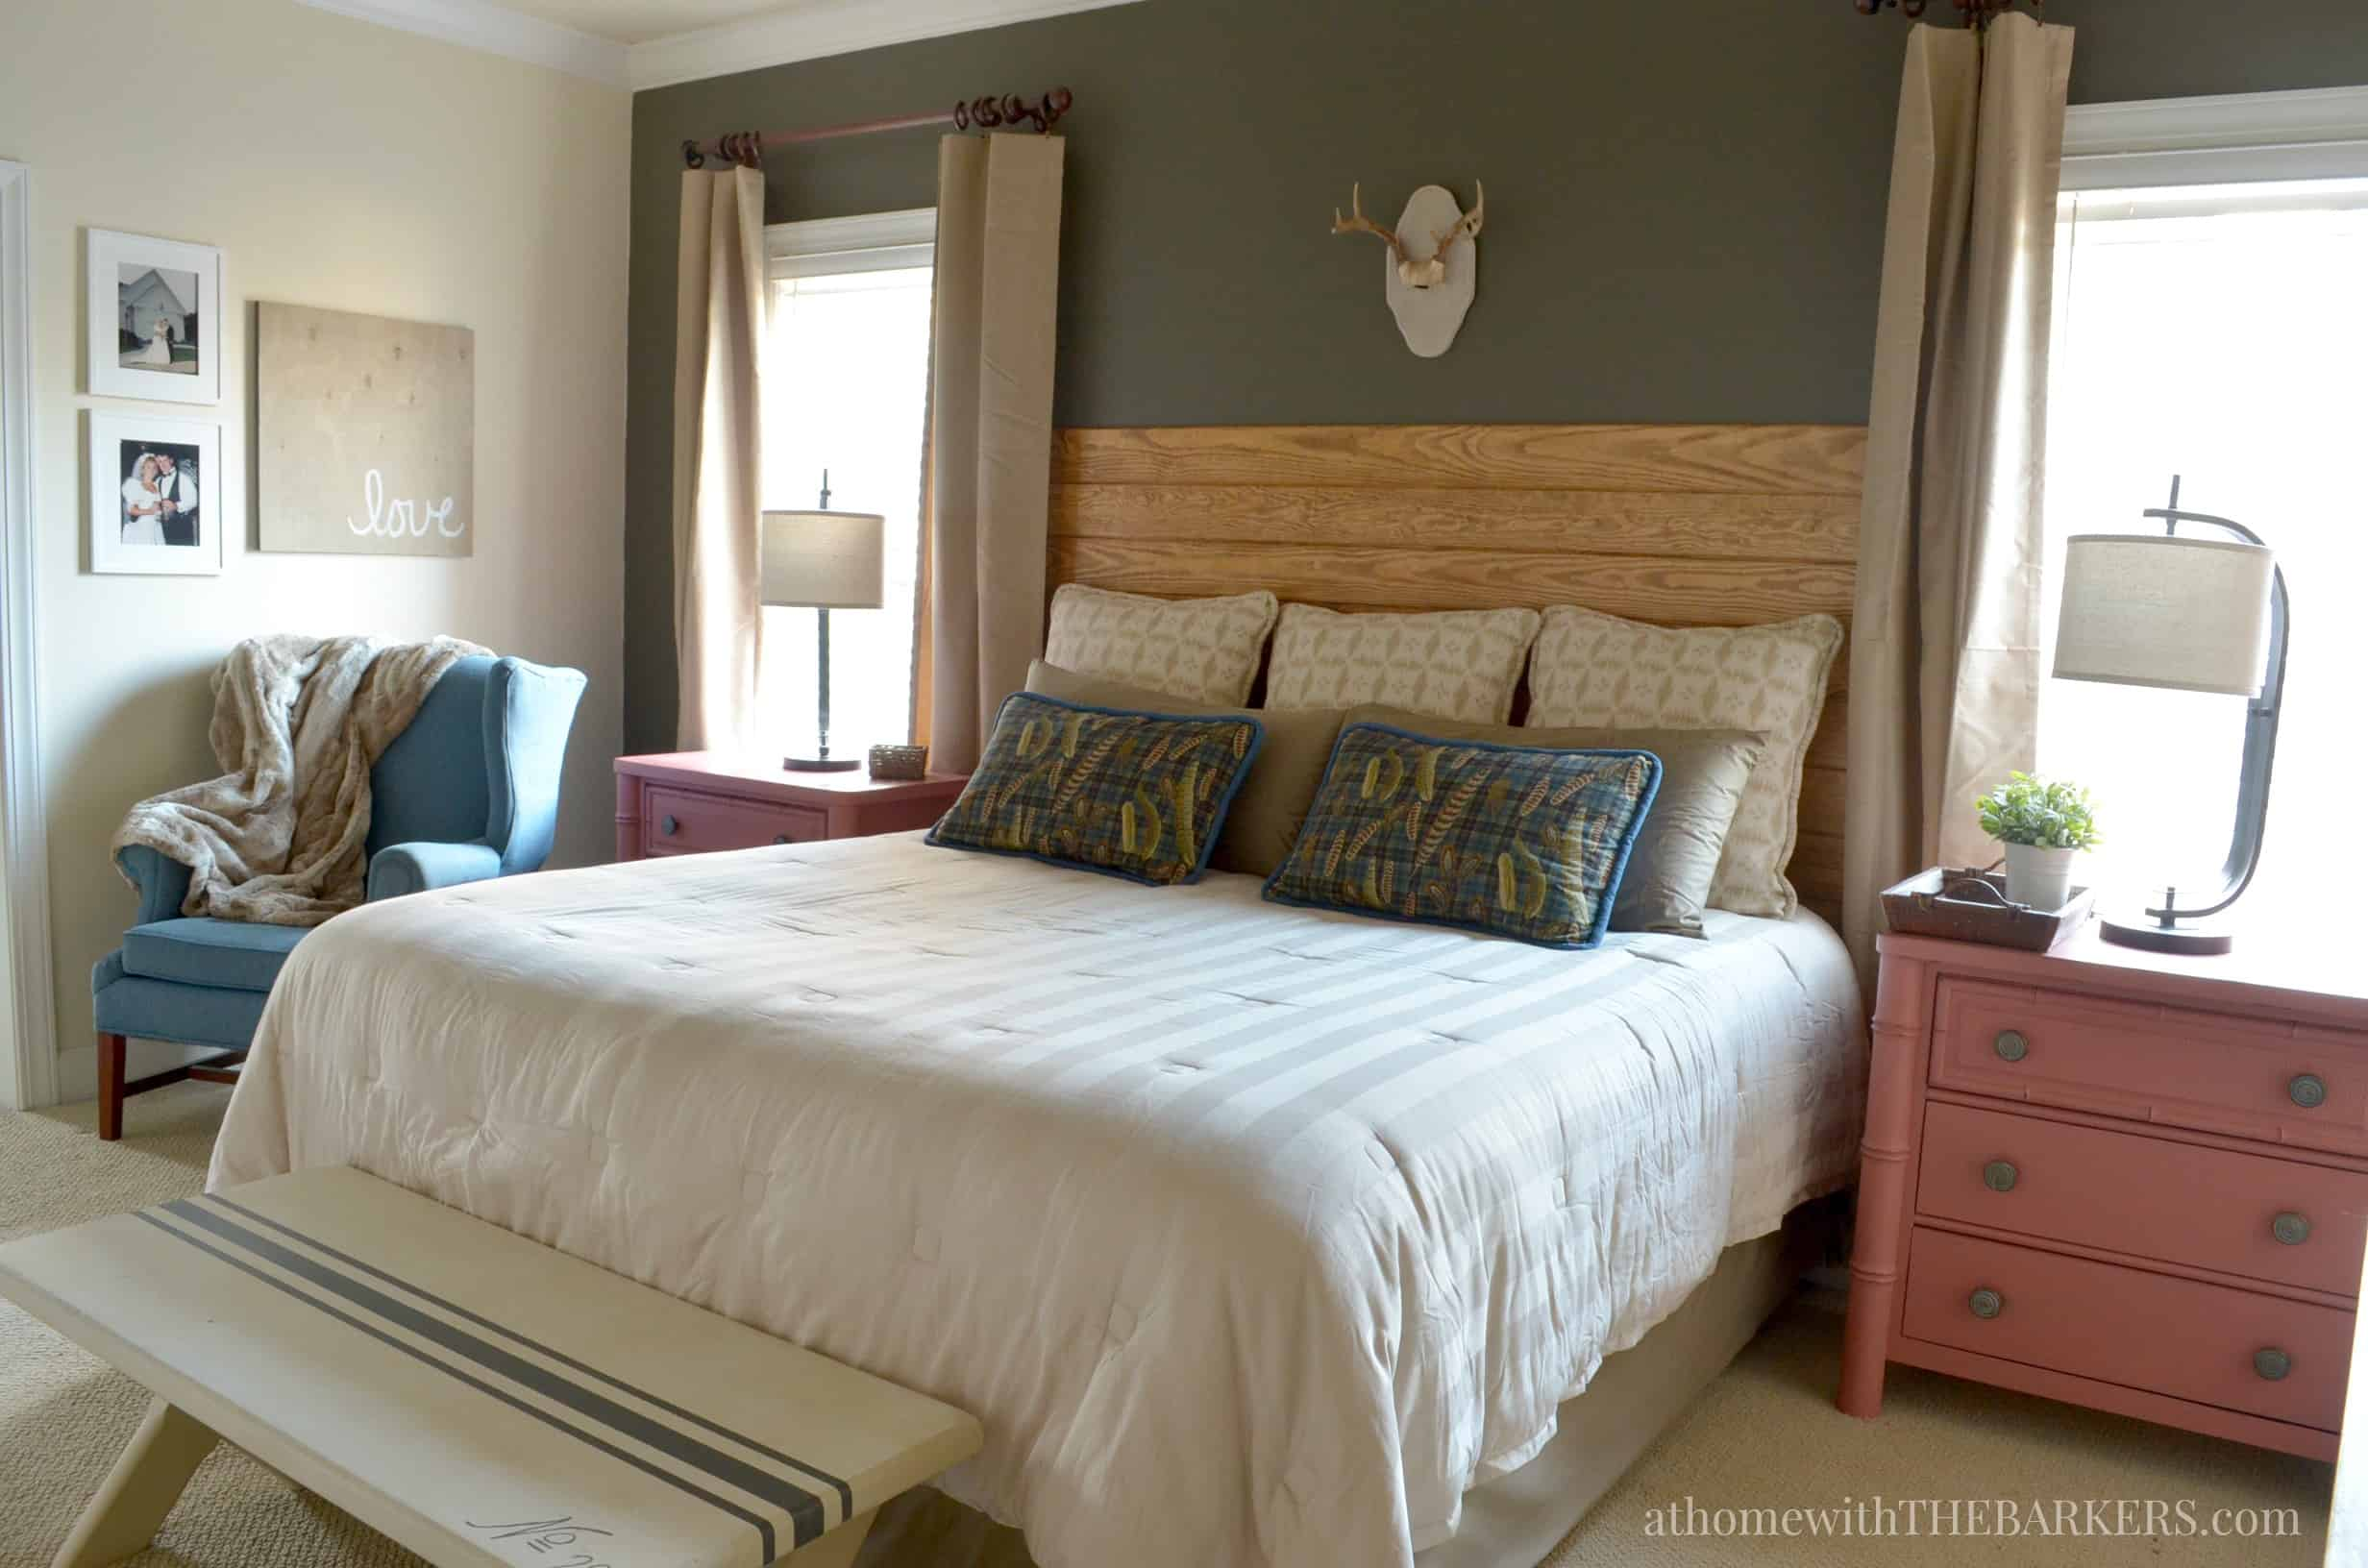 Master bedroom makeover update at home with the barkers for Pictures of bed rooms